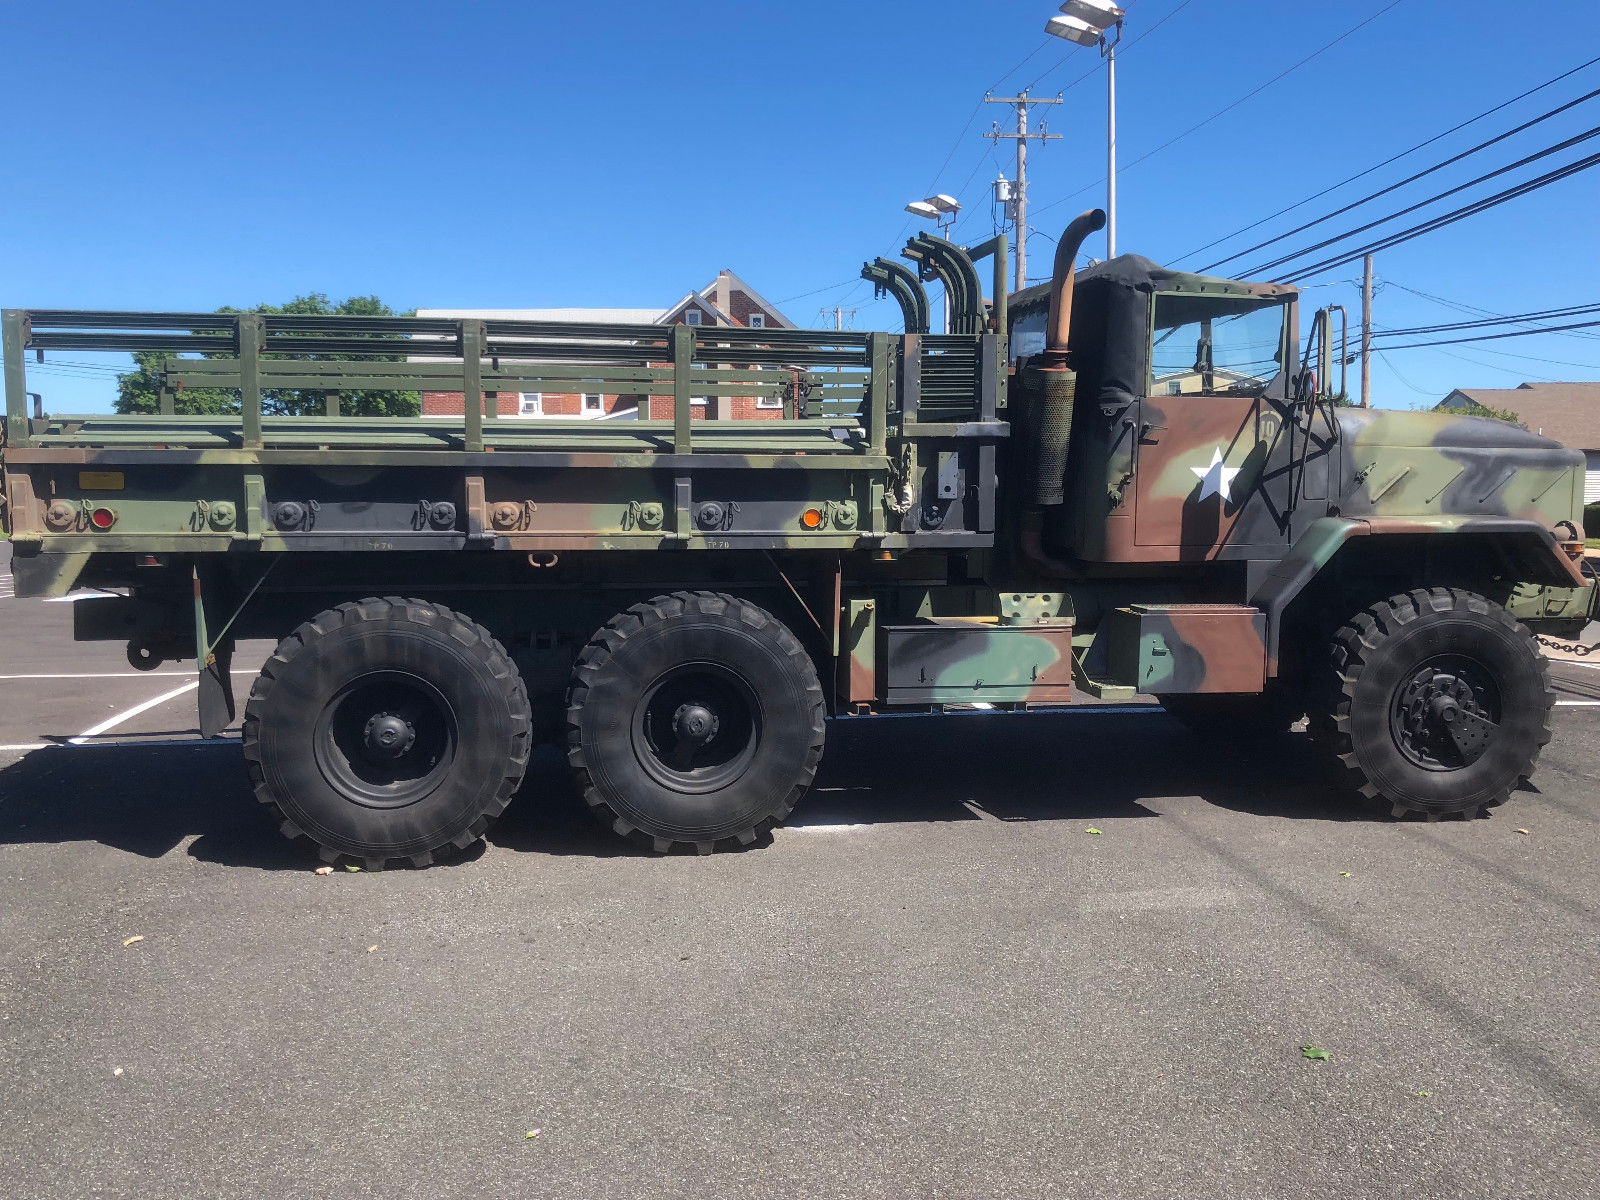 low miles 1991 BMY M925 A2 5 ton Military Truck Troop carier for sale